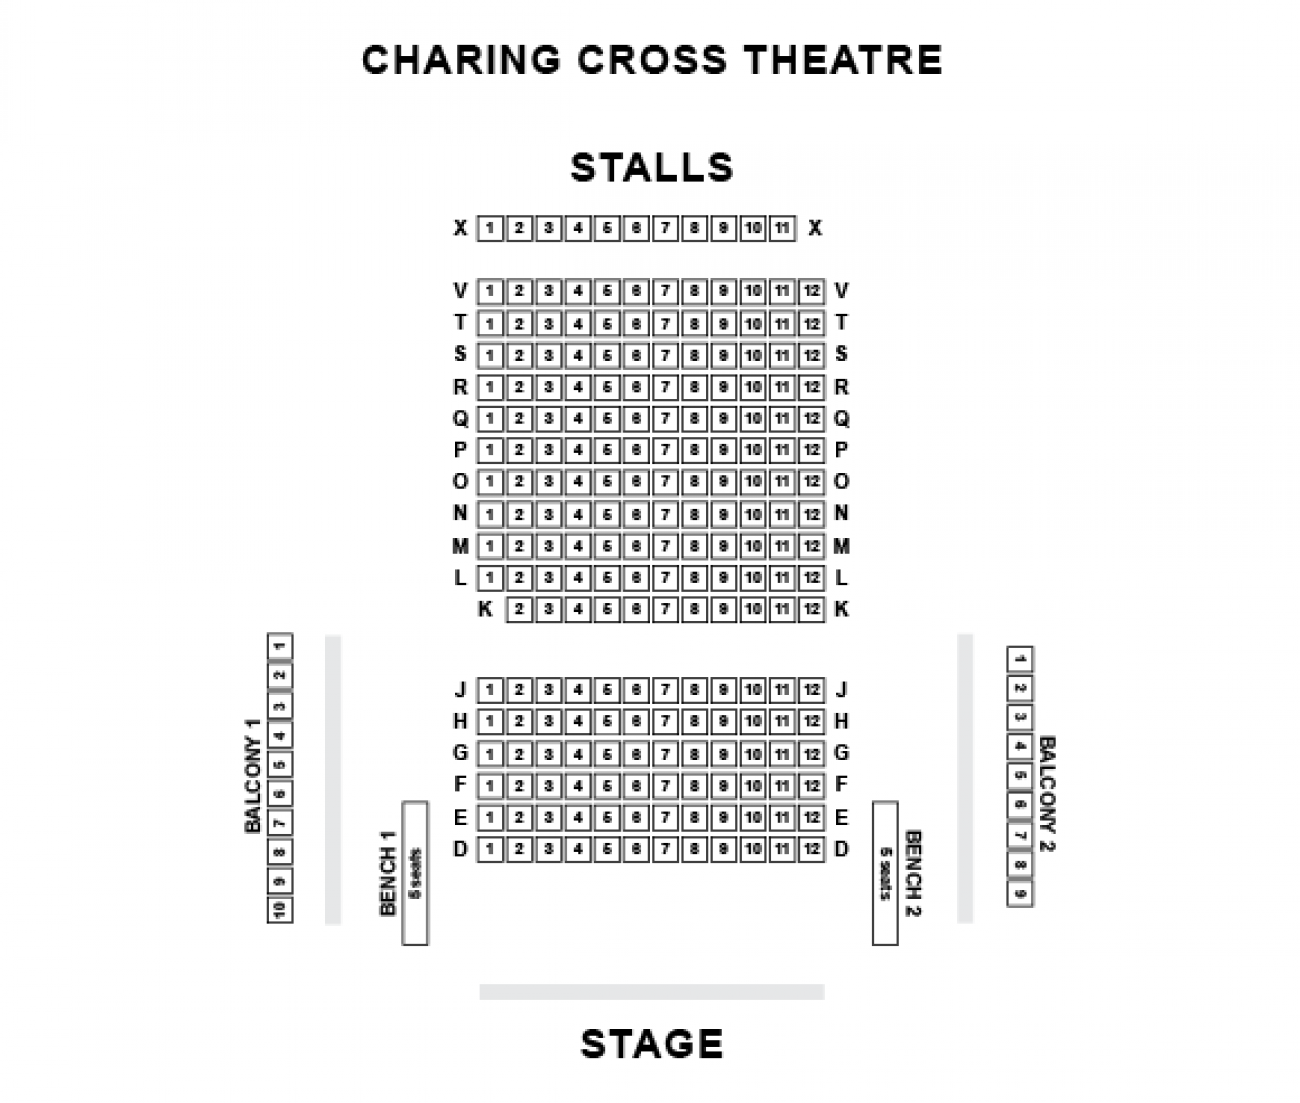 Charing Cross Theatre